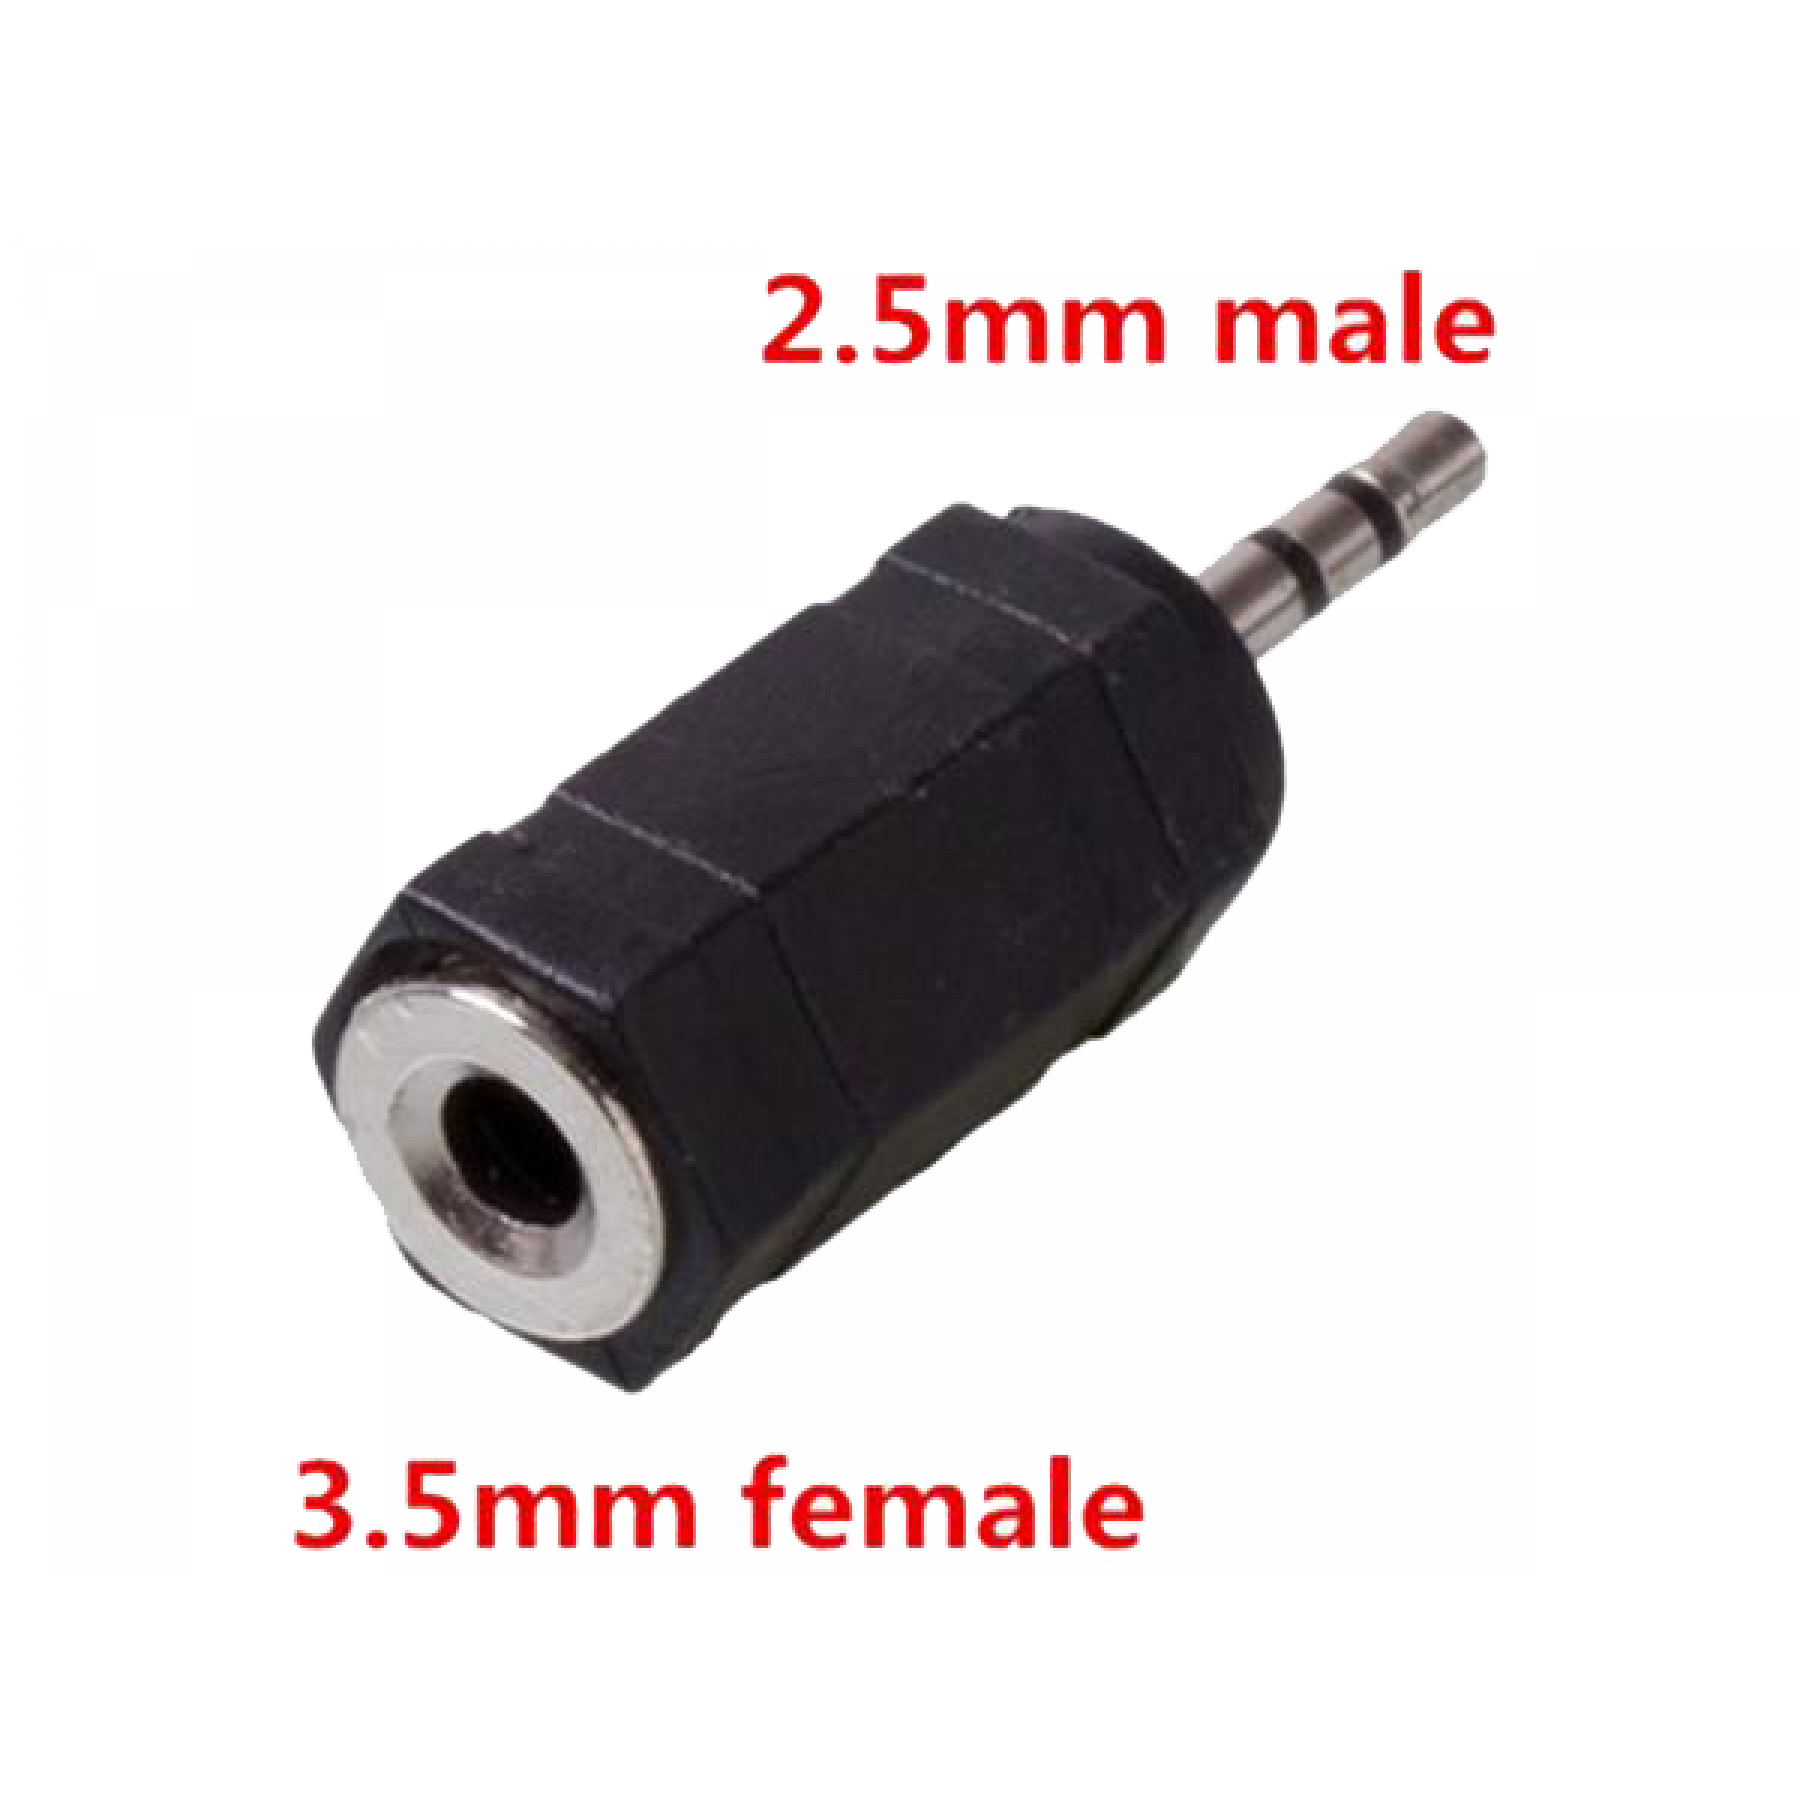 Microfoon adapter female 3,5mm > male 2,5mm